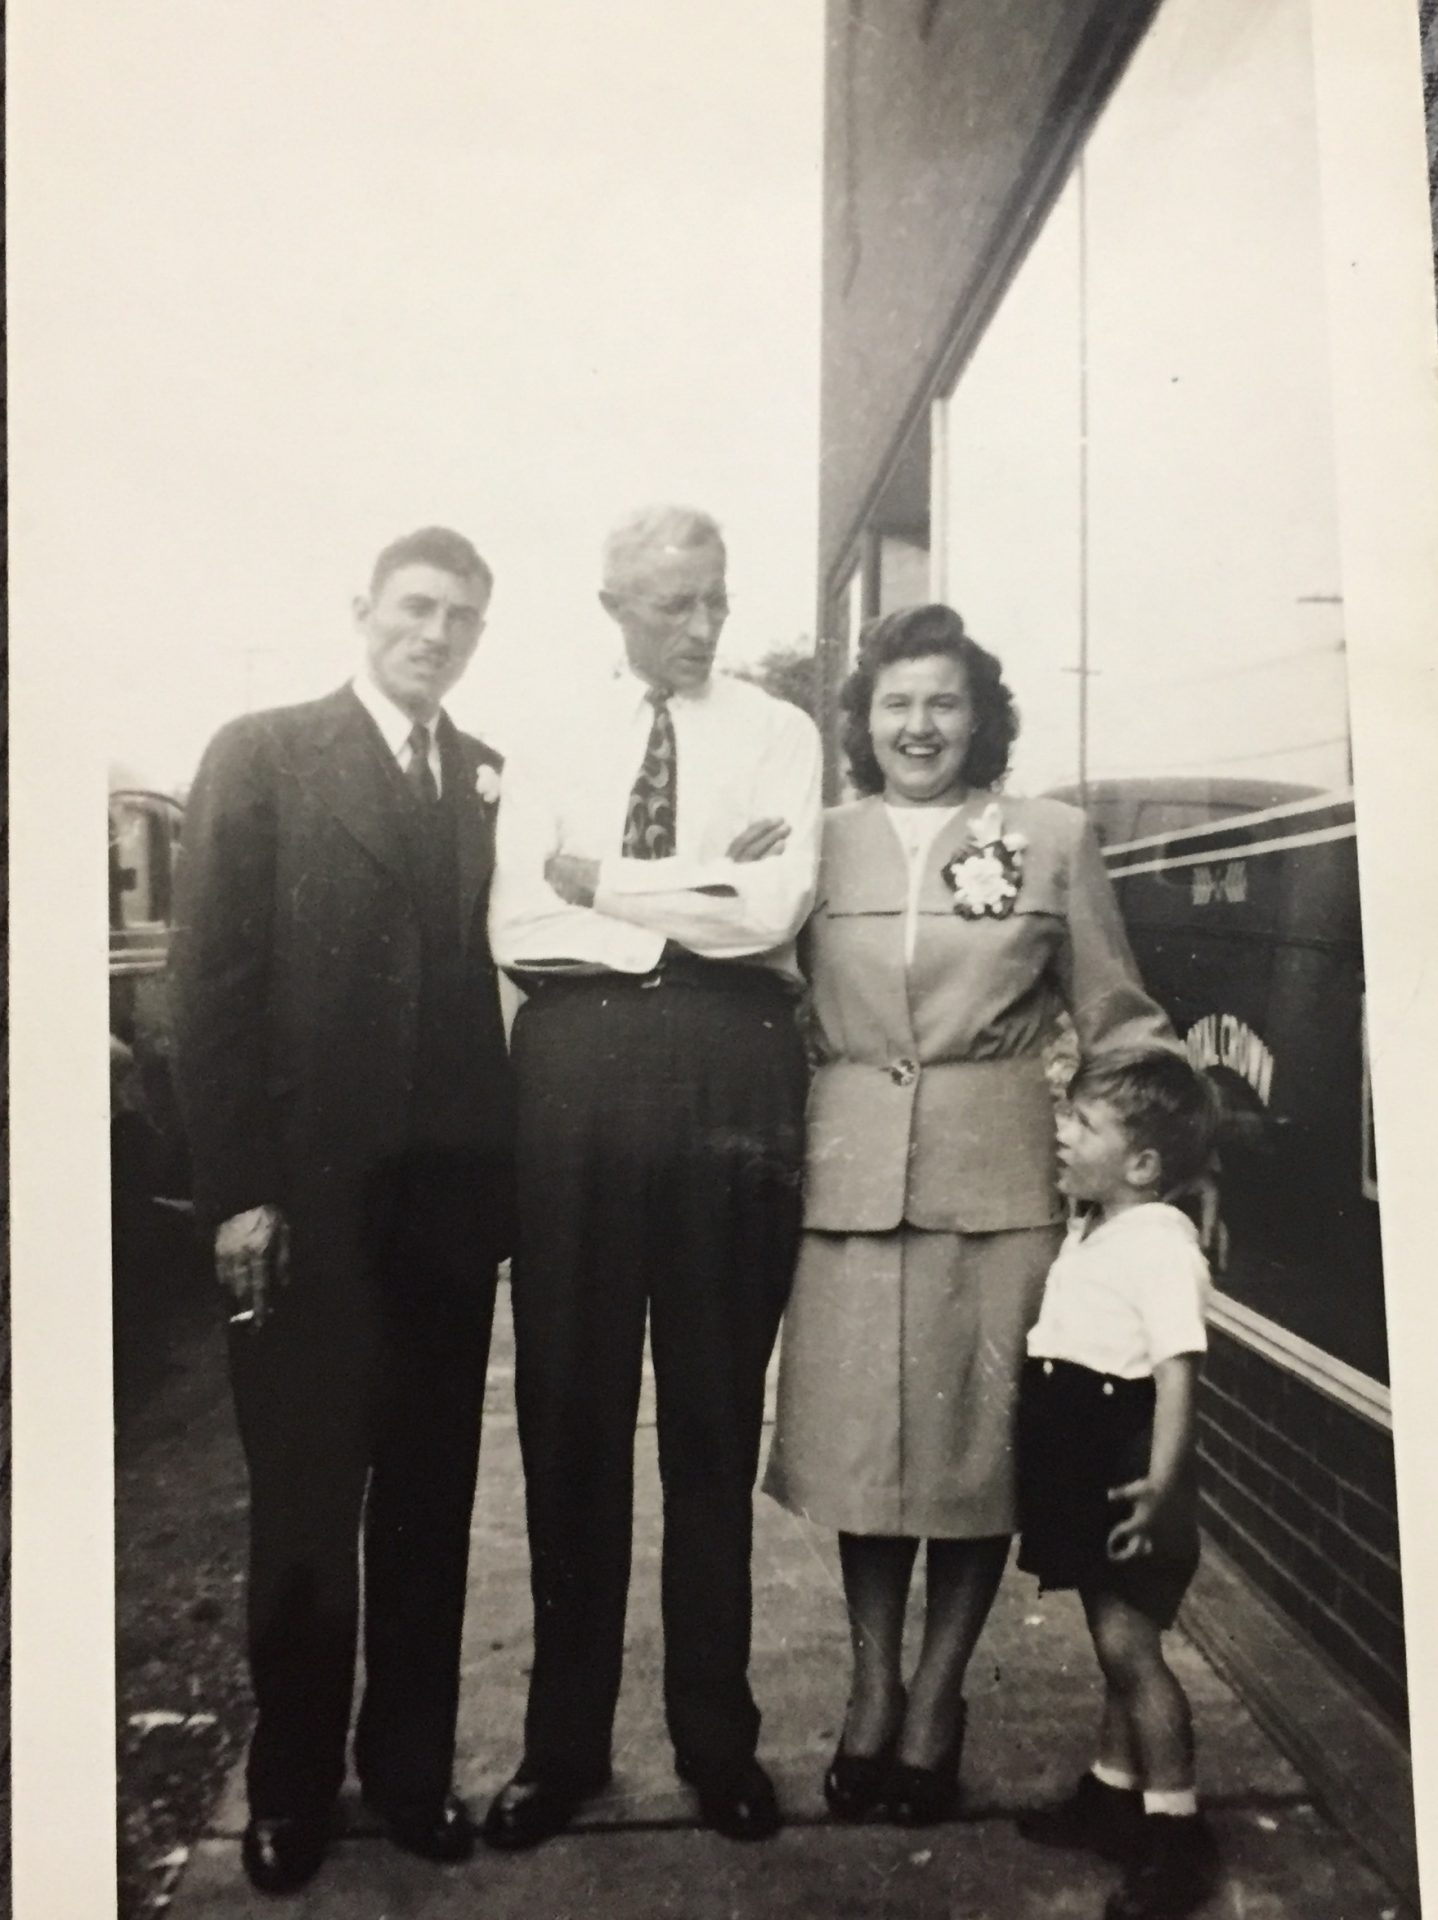 My parents on their wedding day with my grandfather. The little guy is Uncle Livio ??